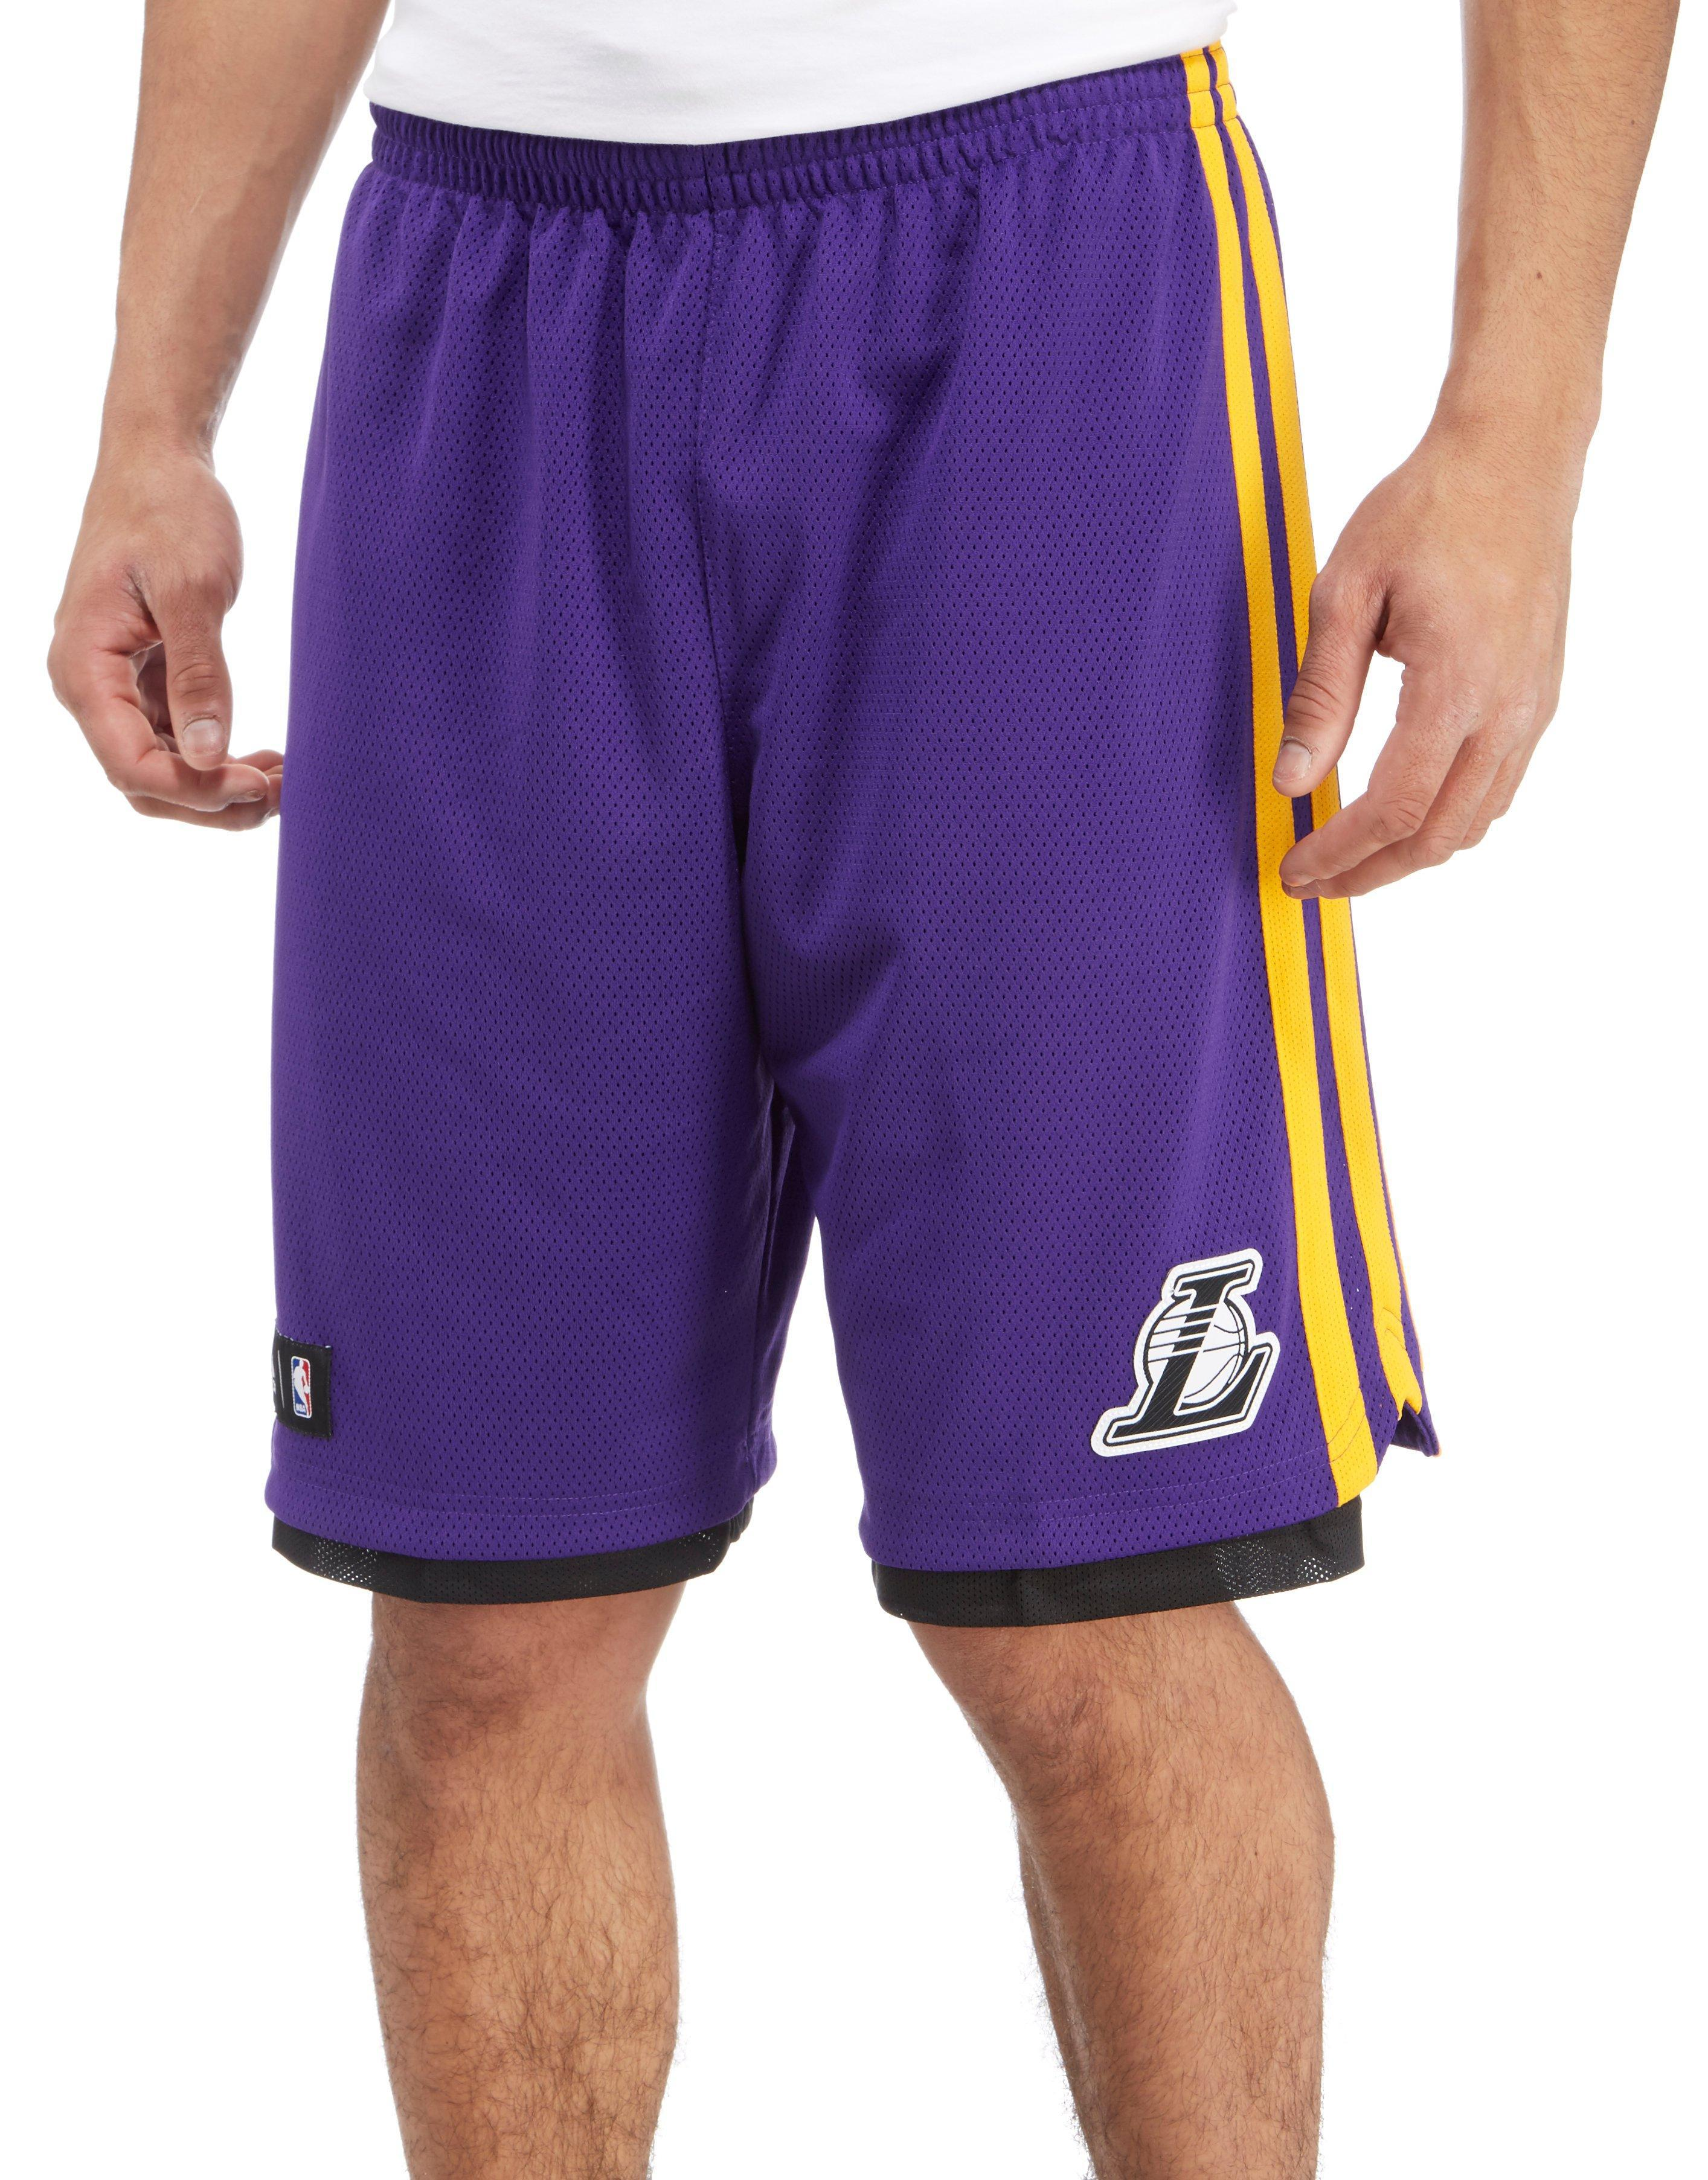 Lyst - adidas Hoops Los Angeles Lakers Shorts in Purple for Men 32c61d1c2